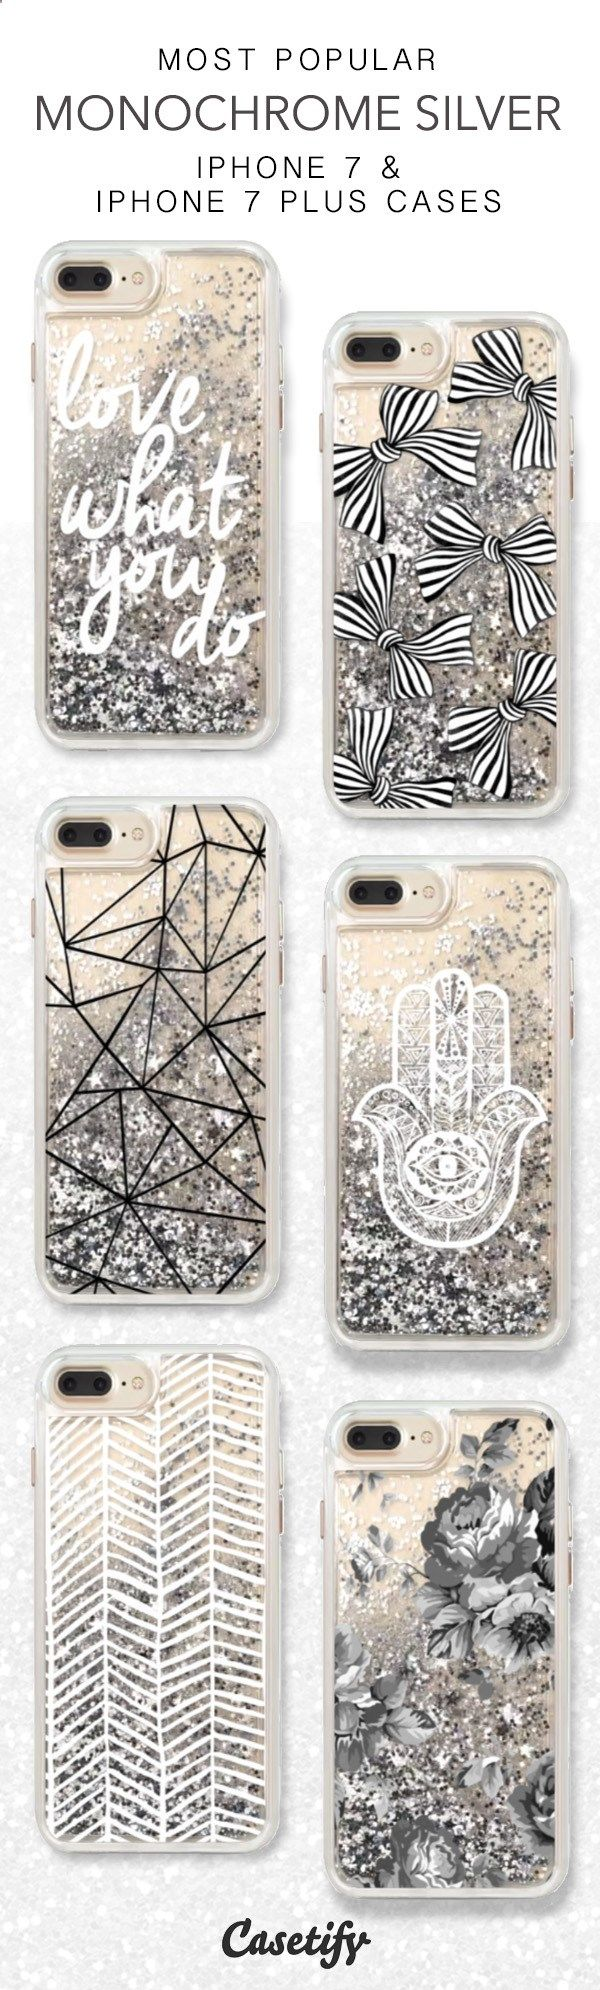 Cell Phone Cases - Phone Cases - Most Popular Monochrome Silver iPhone 7 Cases here > www.casetify.com/... amzn.to/2s1QEt1 - Welcome to the Cell Phone Cases Store, where you'll find great prices on a wide range of different cases for your cell phone (IPhone - Samsung)